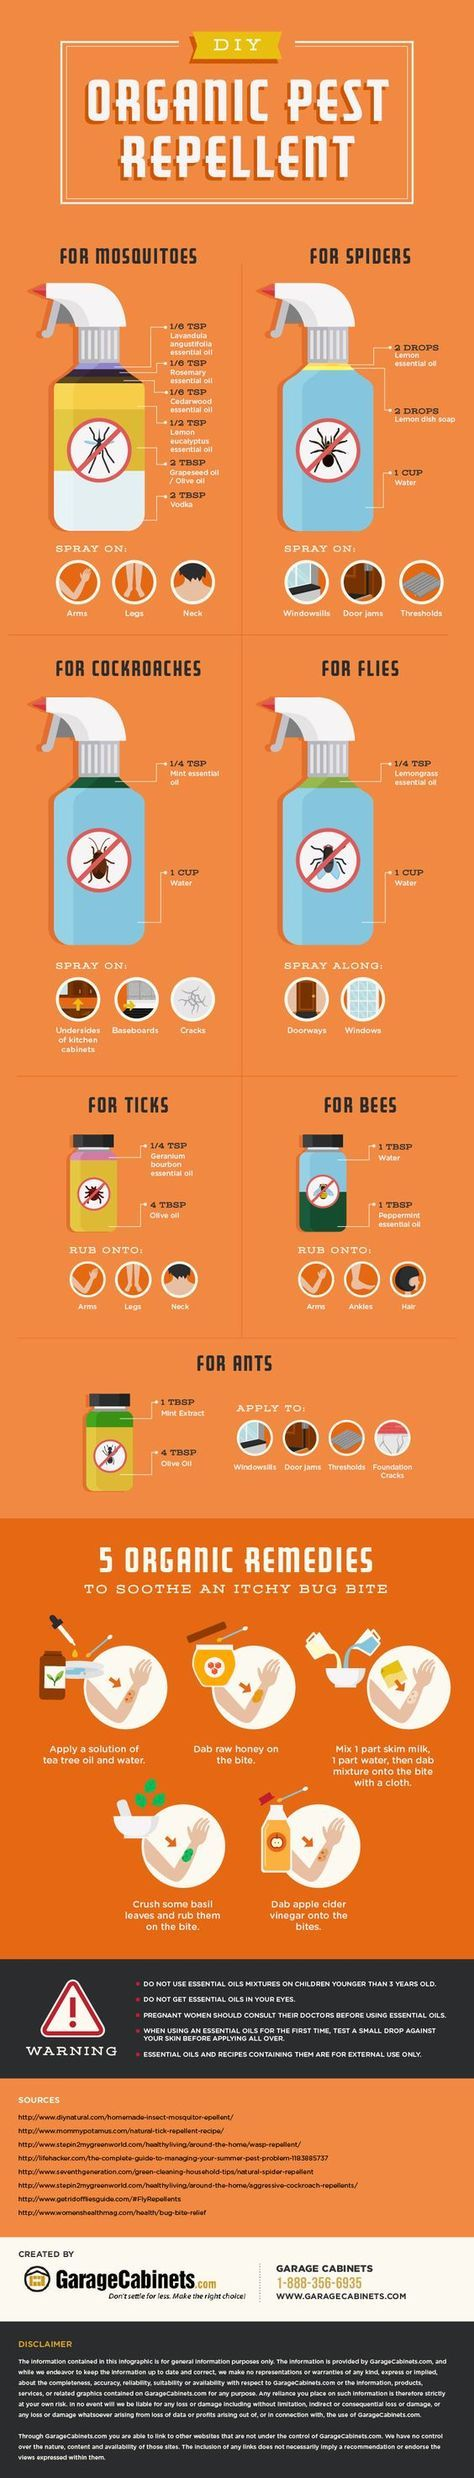 medium resolution of diy organic pest repellant keep bugs out this summer